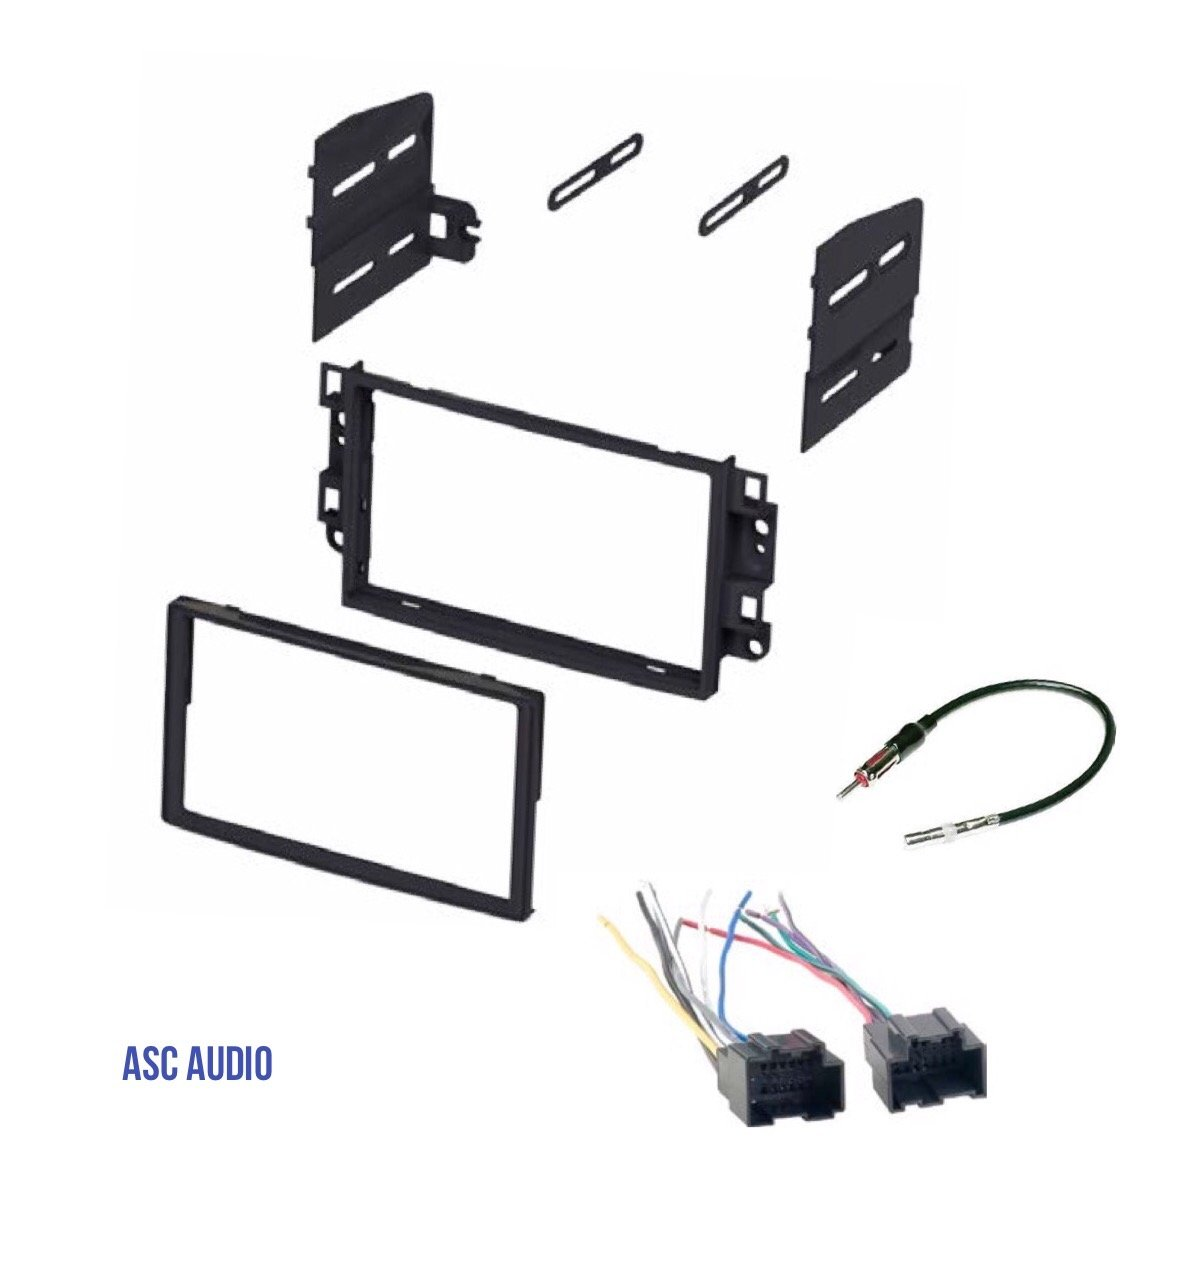 hight resolution of get quotations asc double din car stereo dash kit wire harness antenna adapter to install radio